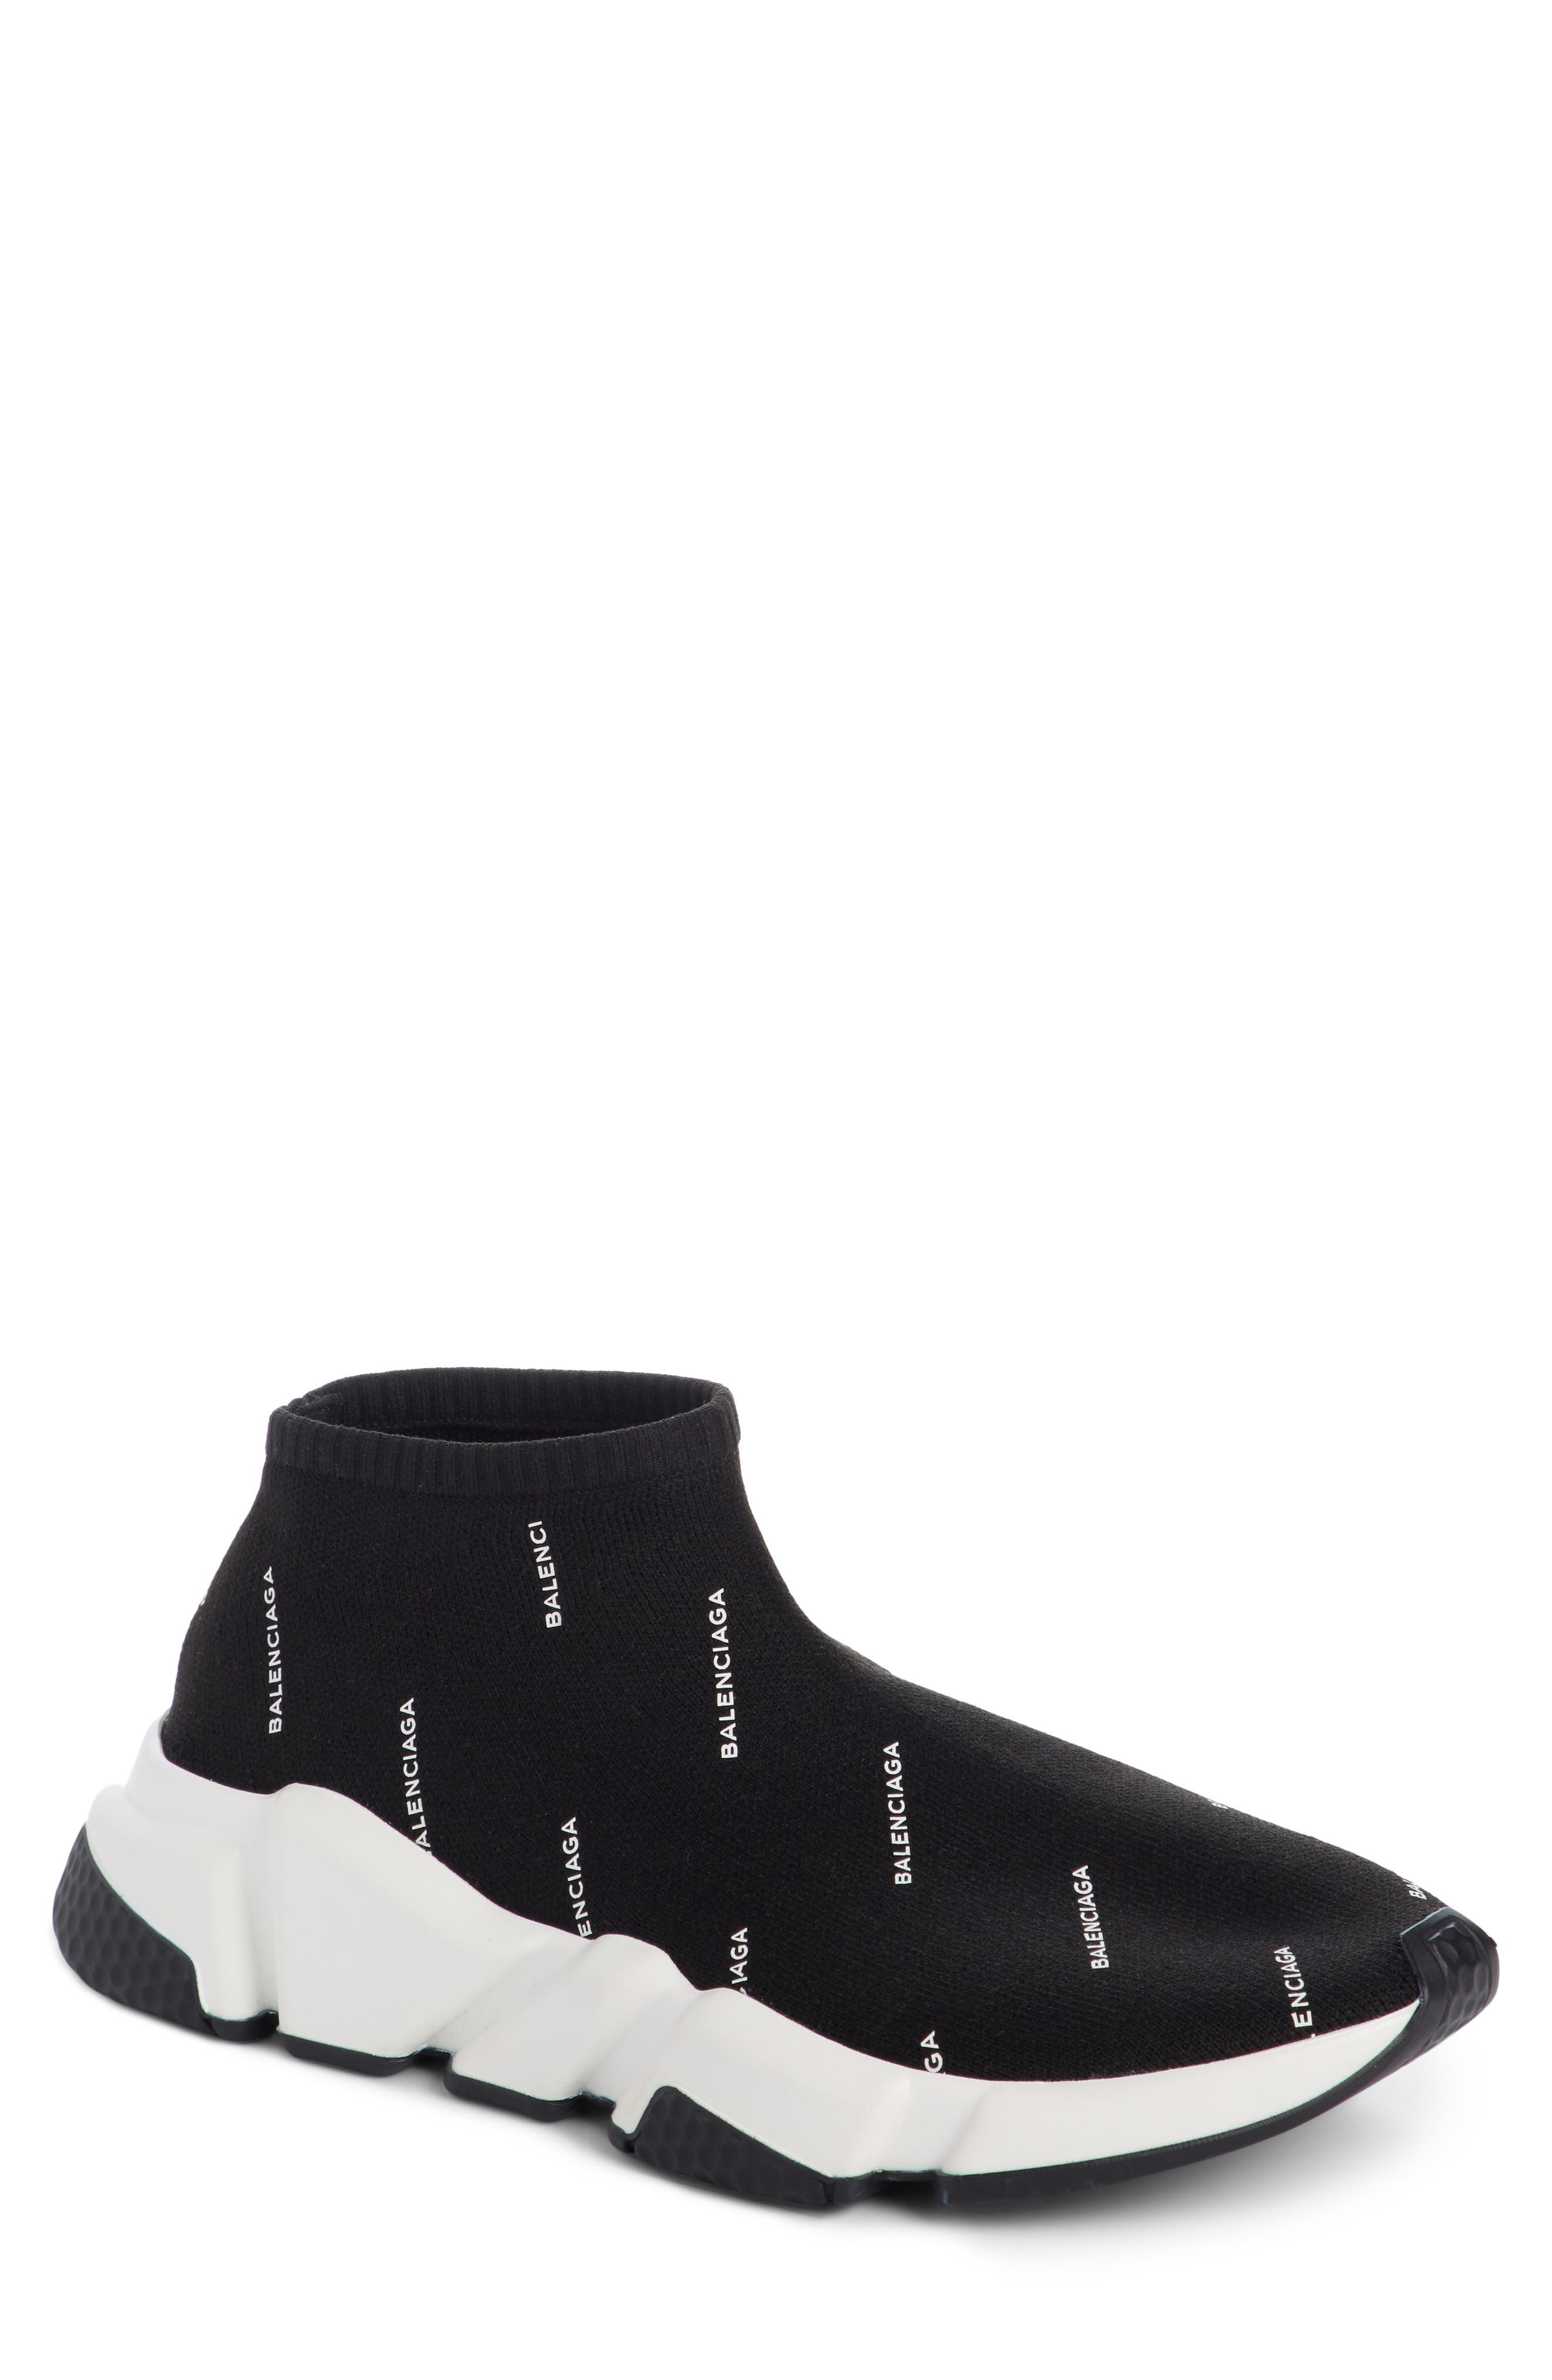 Low Speed Sneaker,                         Main,                         color, Black/ White